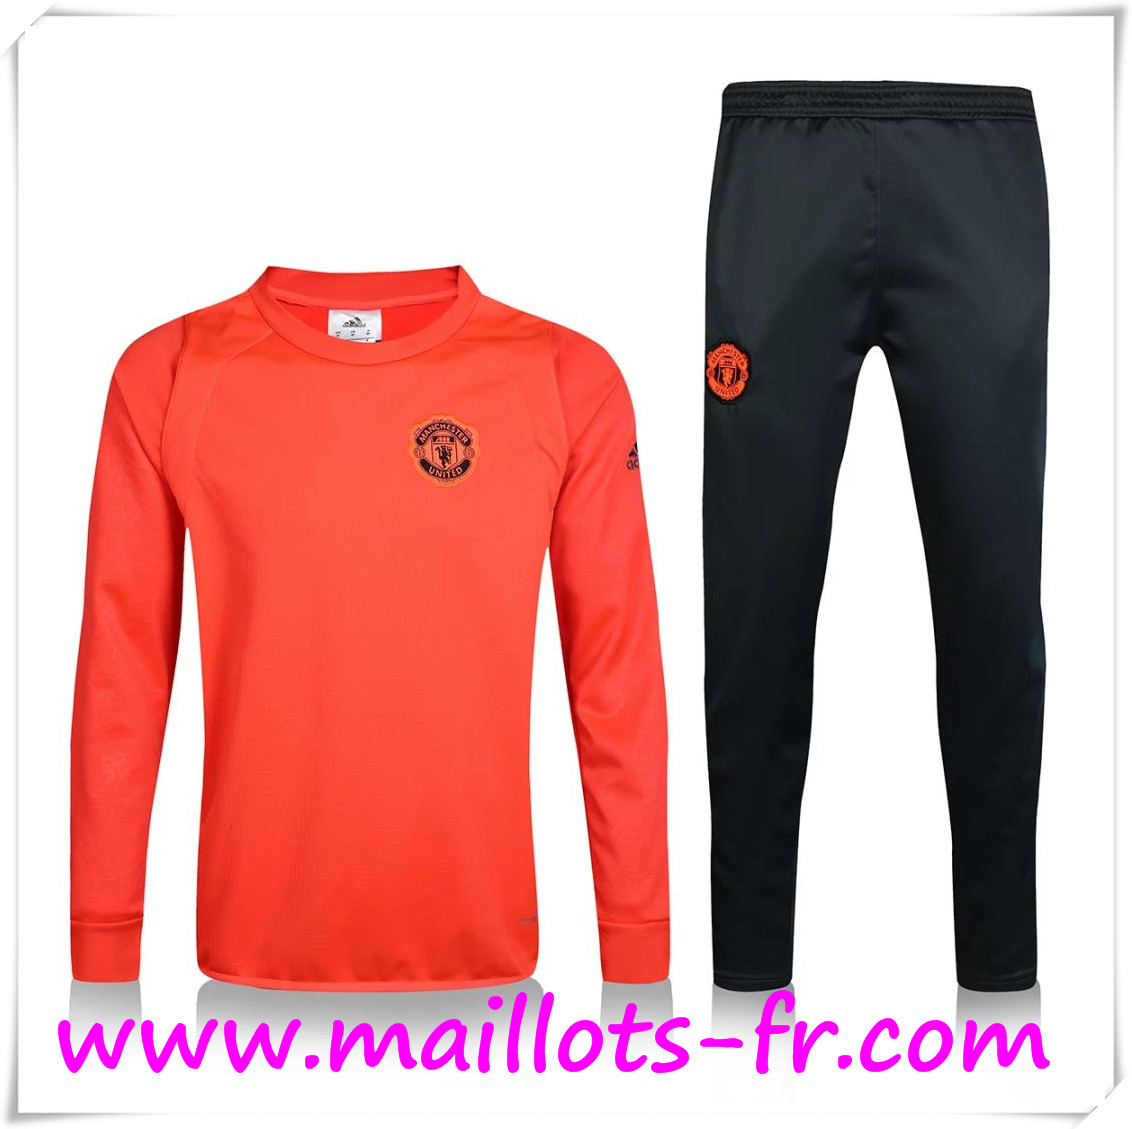 maillots-fr: Nouveau Champions Survetement de foot Manchester United Ajouter du velours Orange 2016 2017 Ensemble